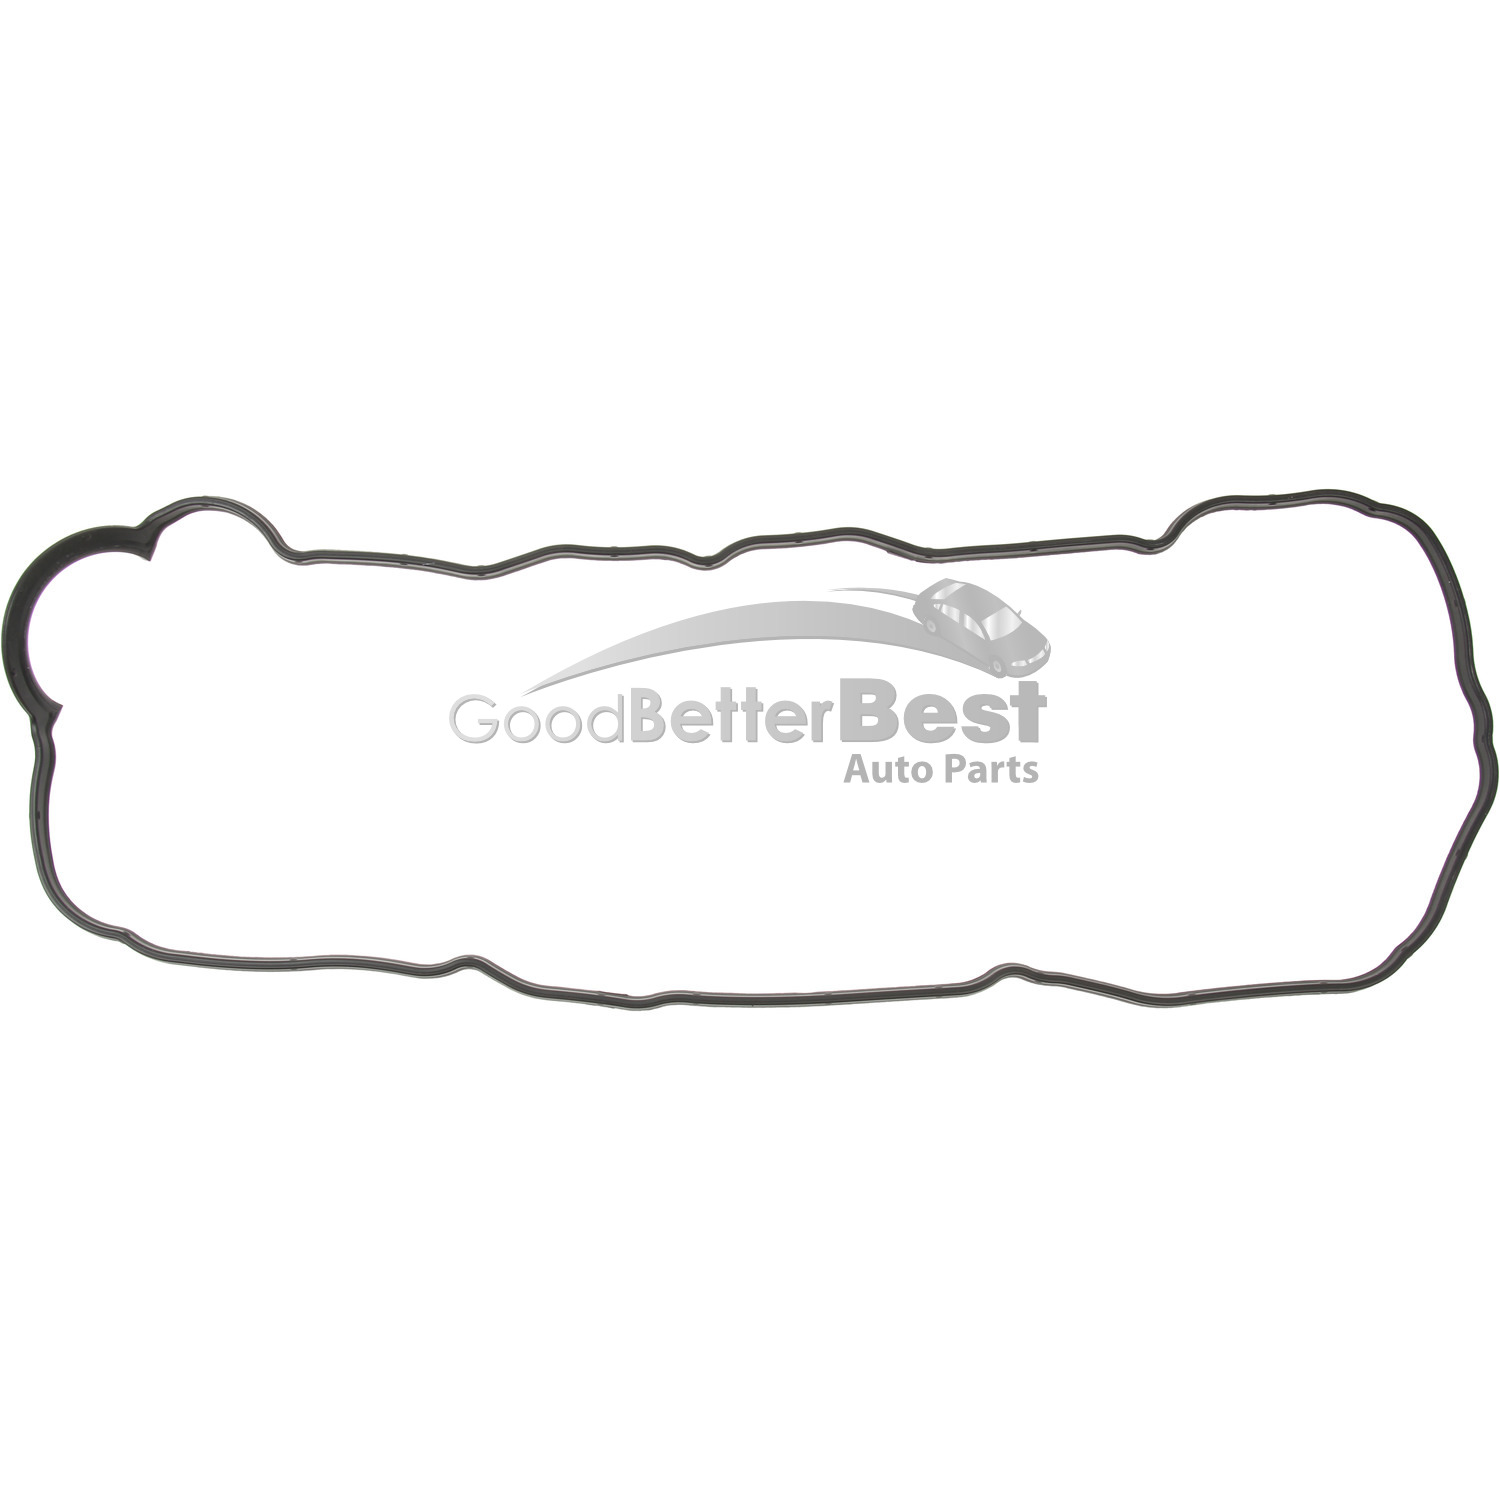 New Nippon Reinz Engine Valve Cover Gasket Right